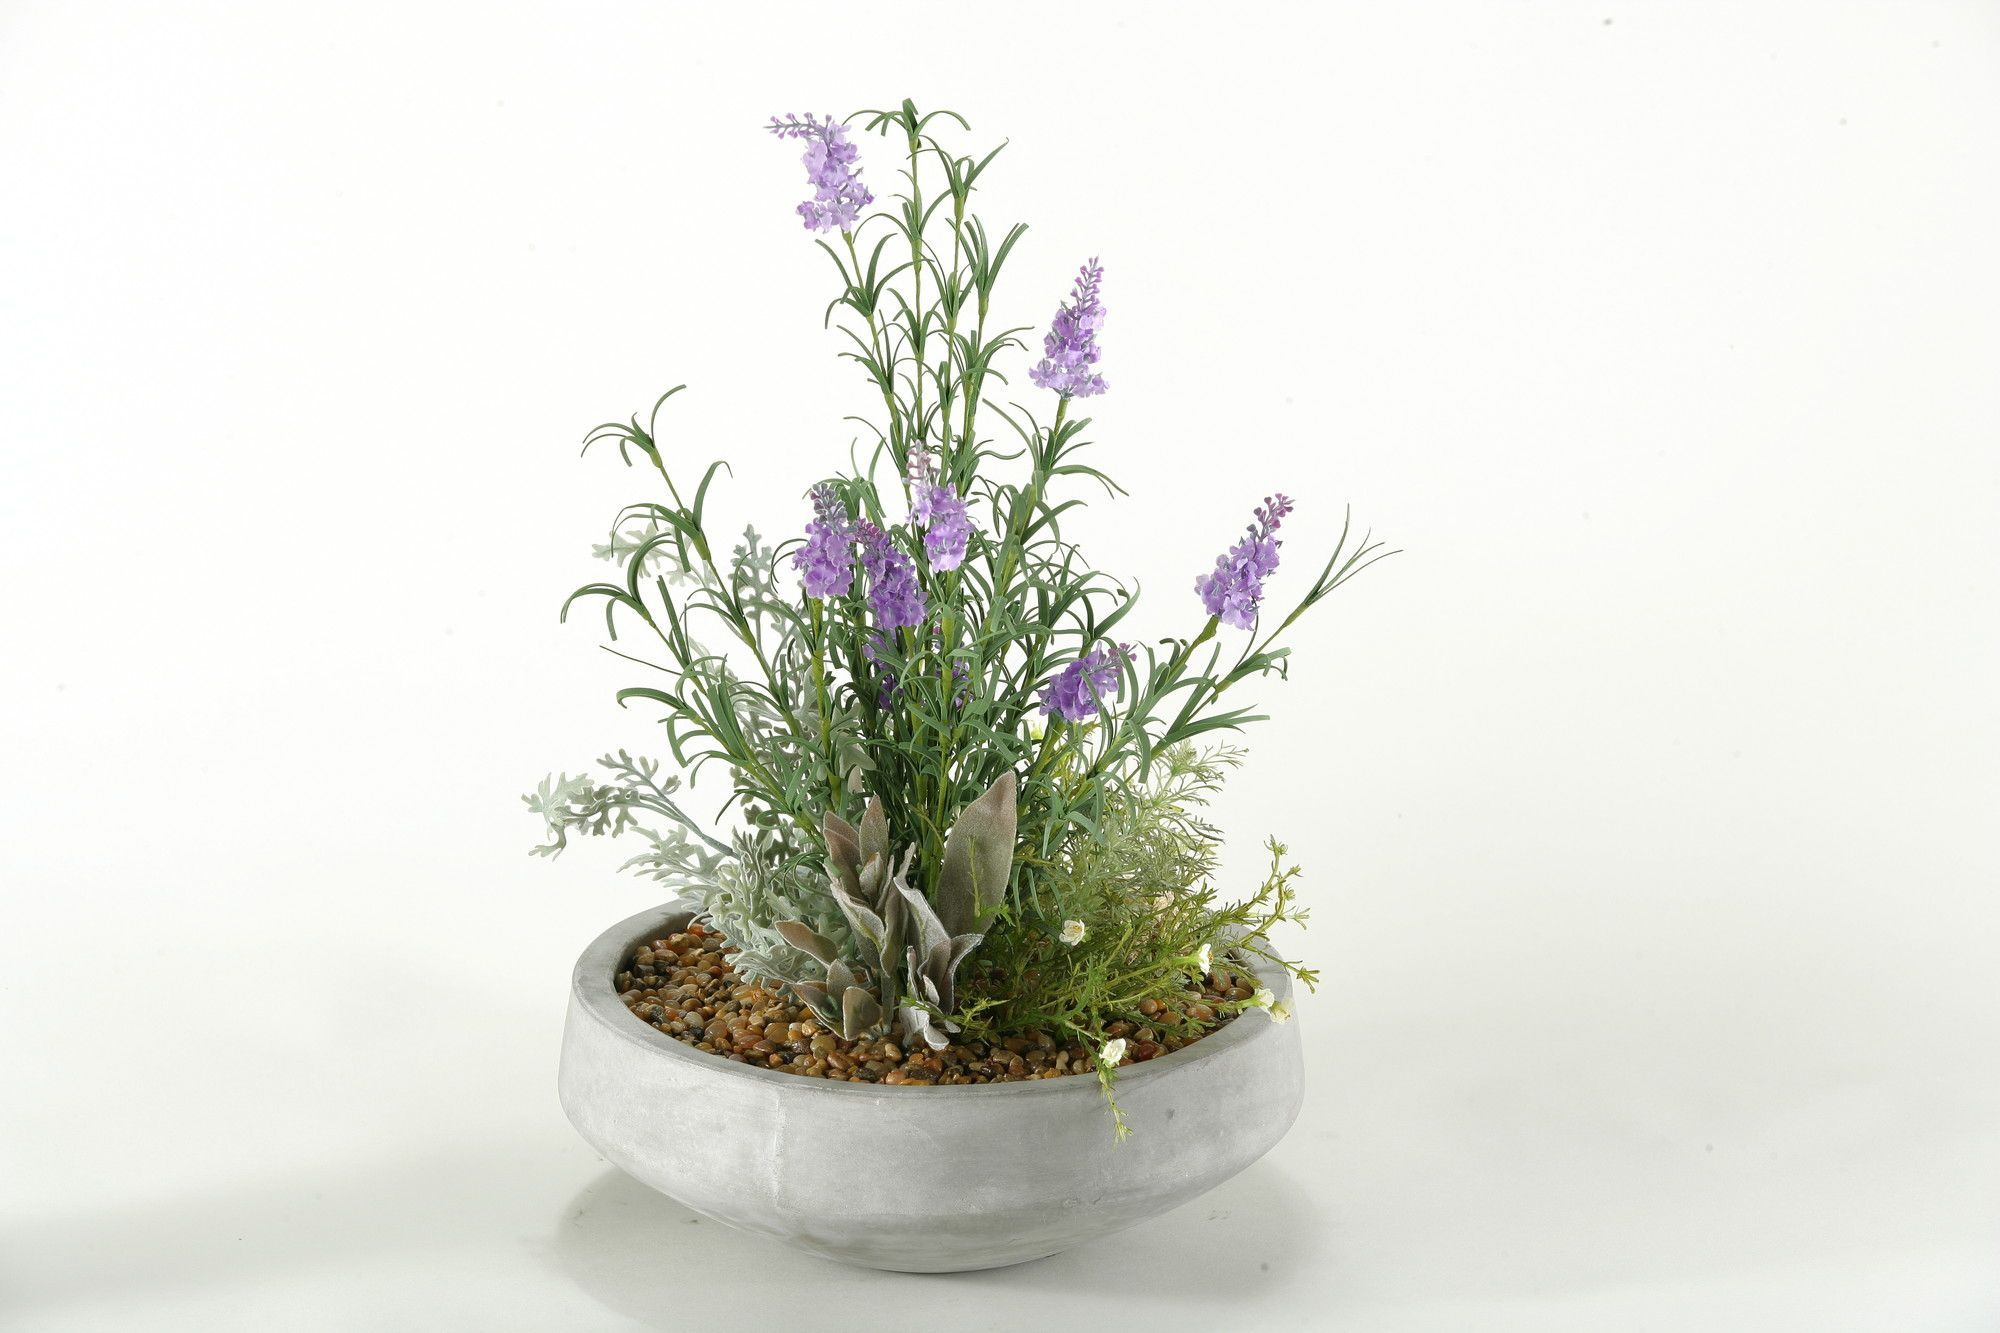 Lavender and Mixed Herbs in Contemporary Bowl